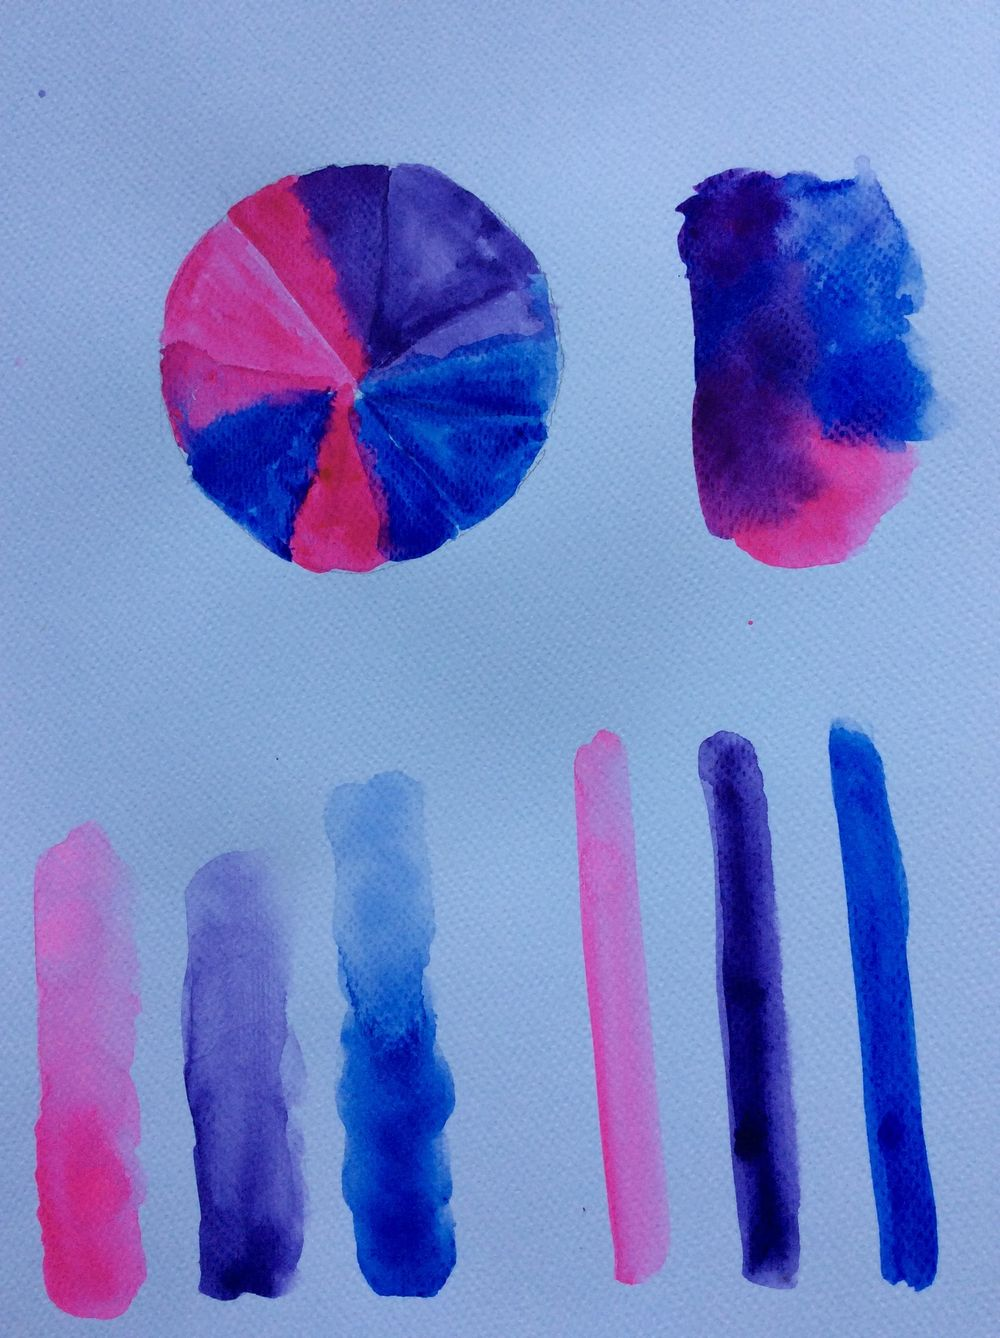 Whimsical Face in watercolour - image 6 - student project